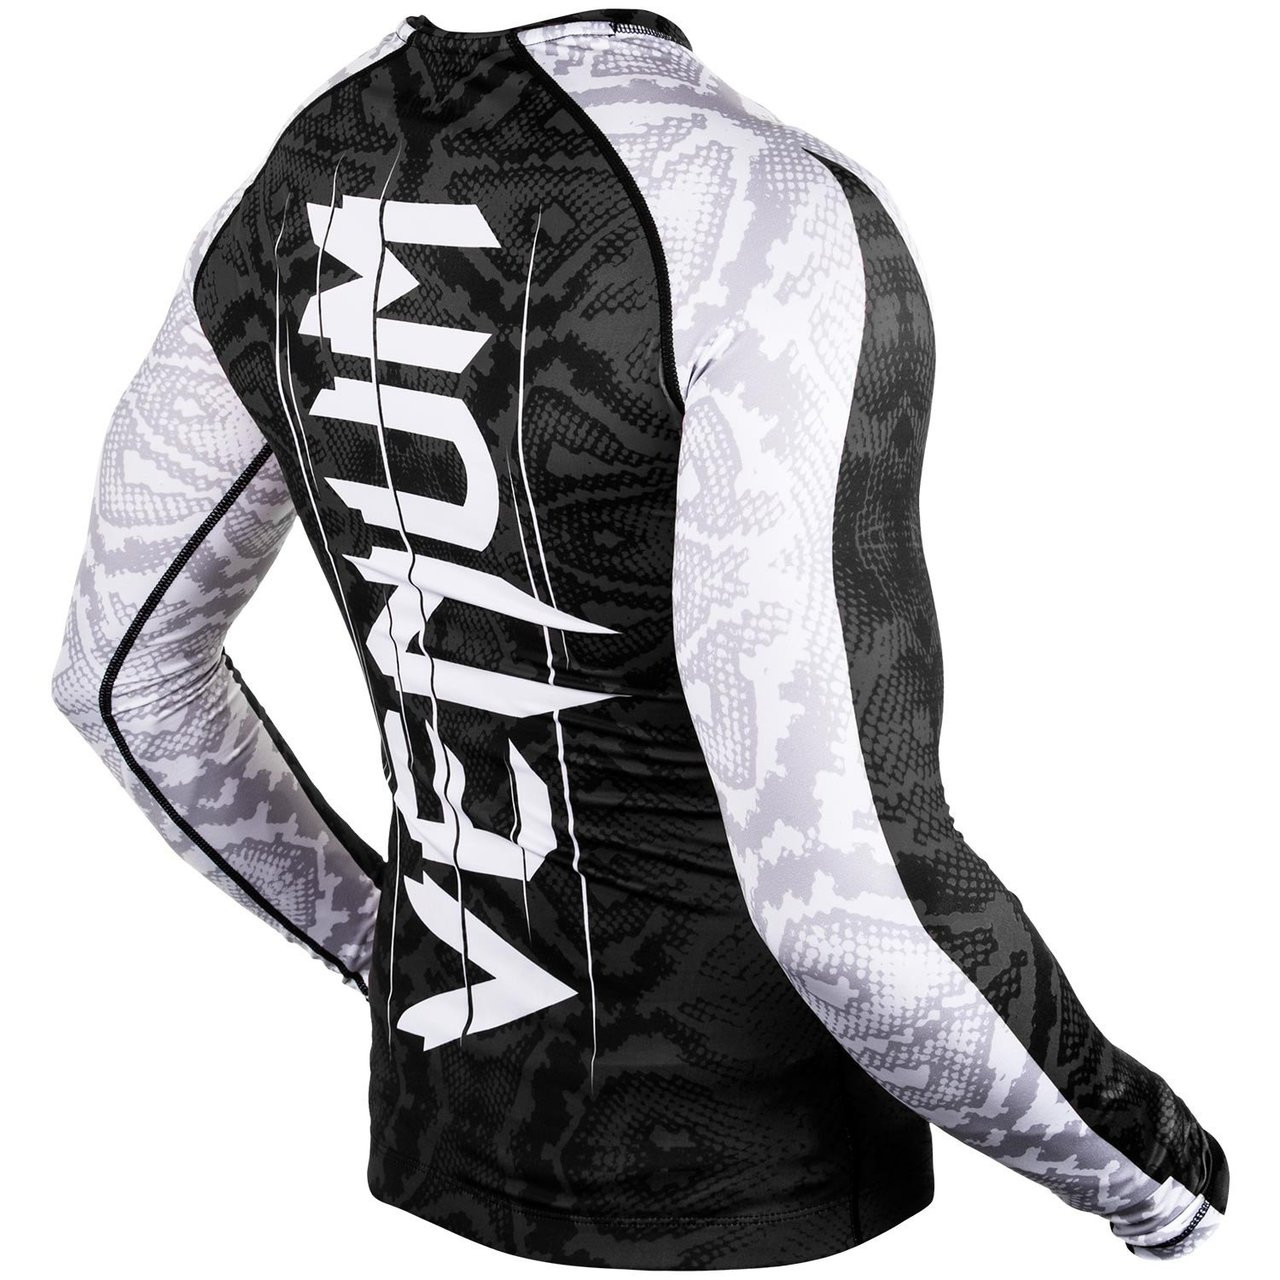 Venum Amazonia 5 Rashguard Longsleeve (Black) available at www.thejiujitsushop.com  Enjoy Free Shipping from The Jiu Jitsu Shop today!